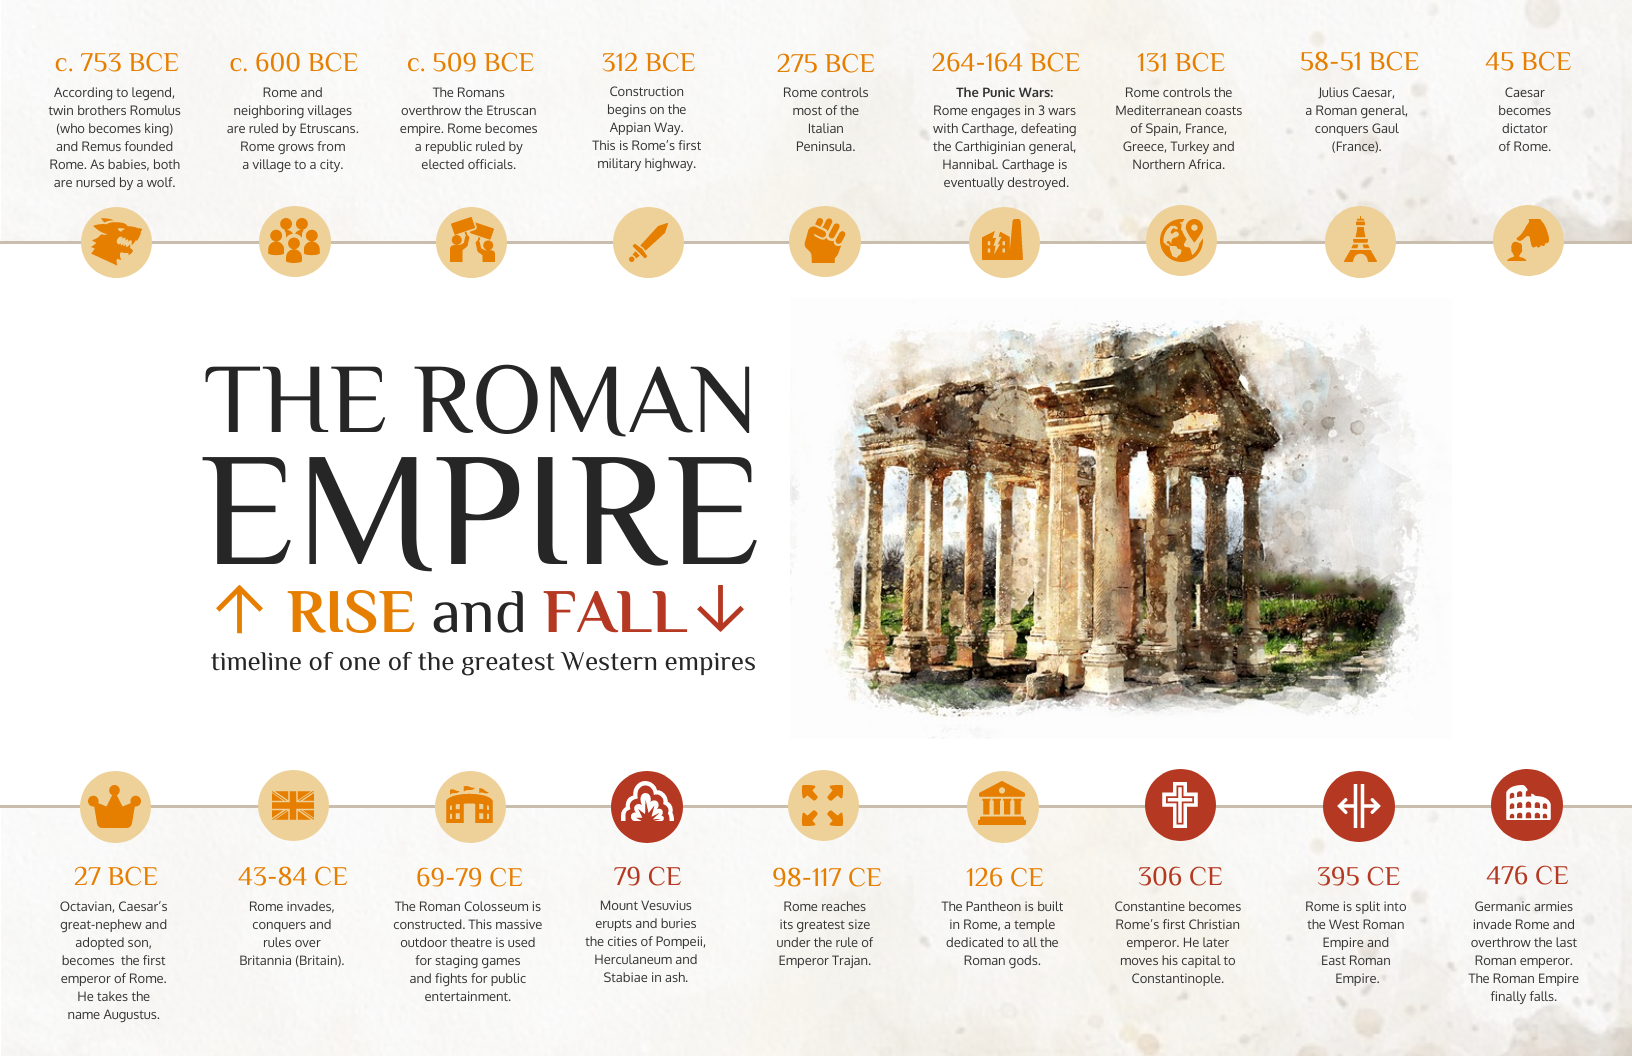 change in data over time roman empire timeline infographic